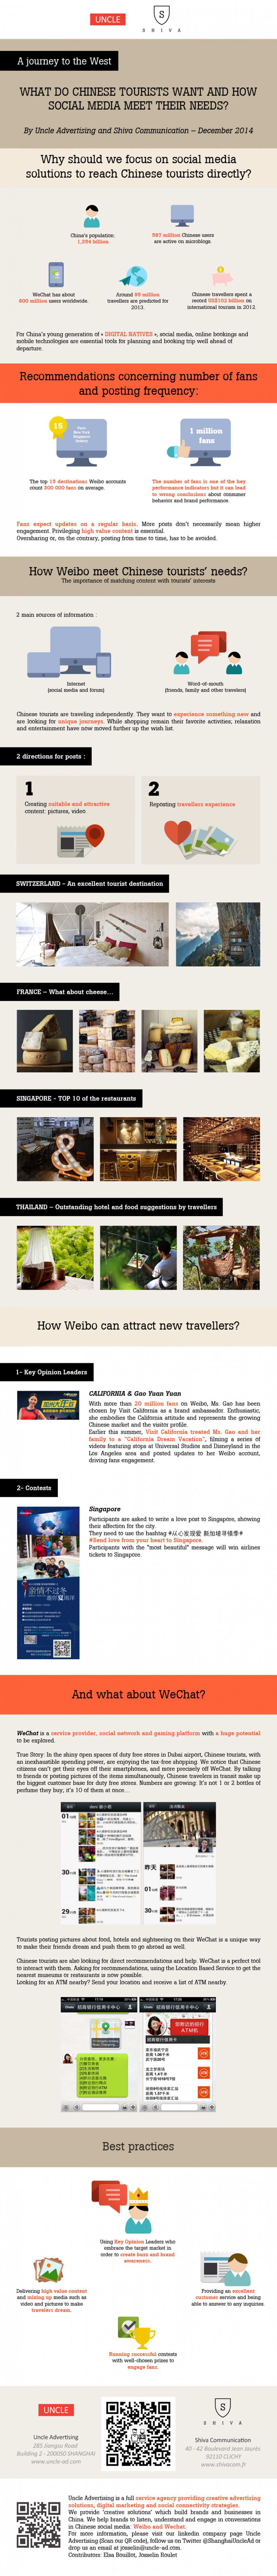 What do Chinese Tourists Want and How Social Media Meet Their Needs? Infographic